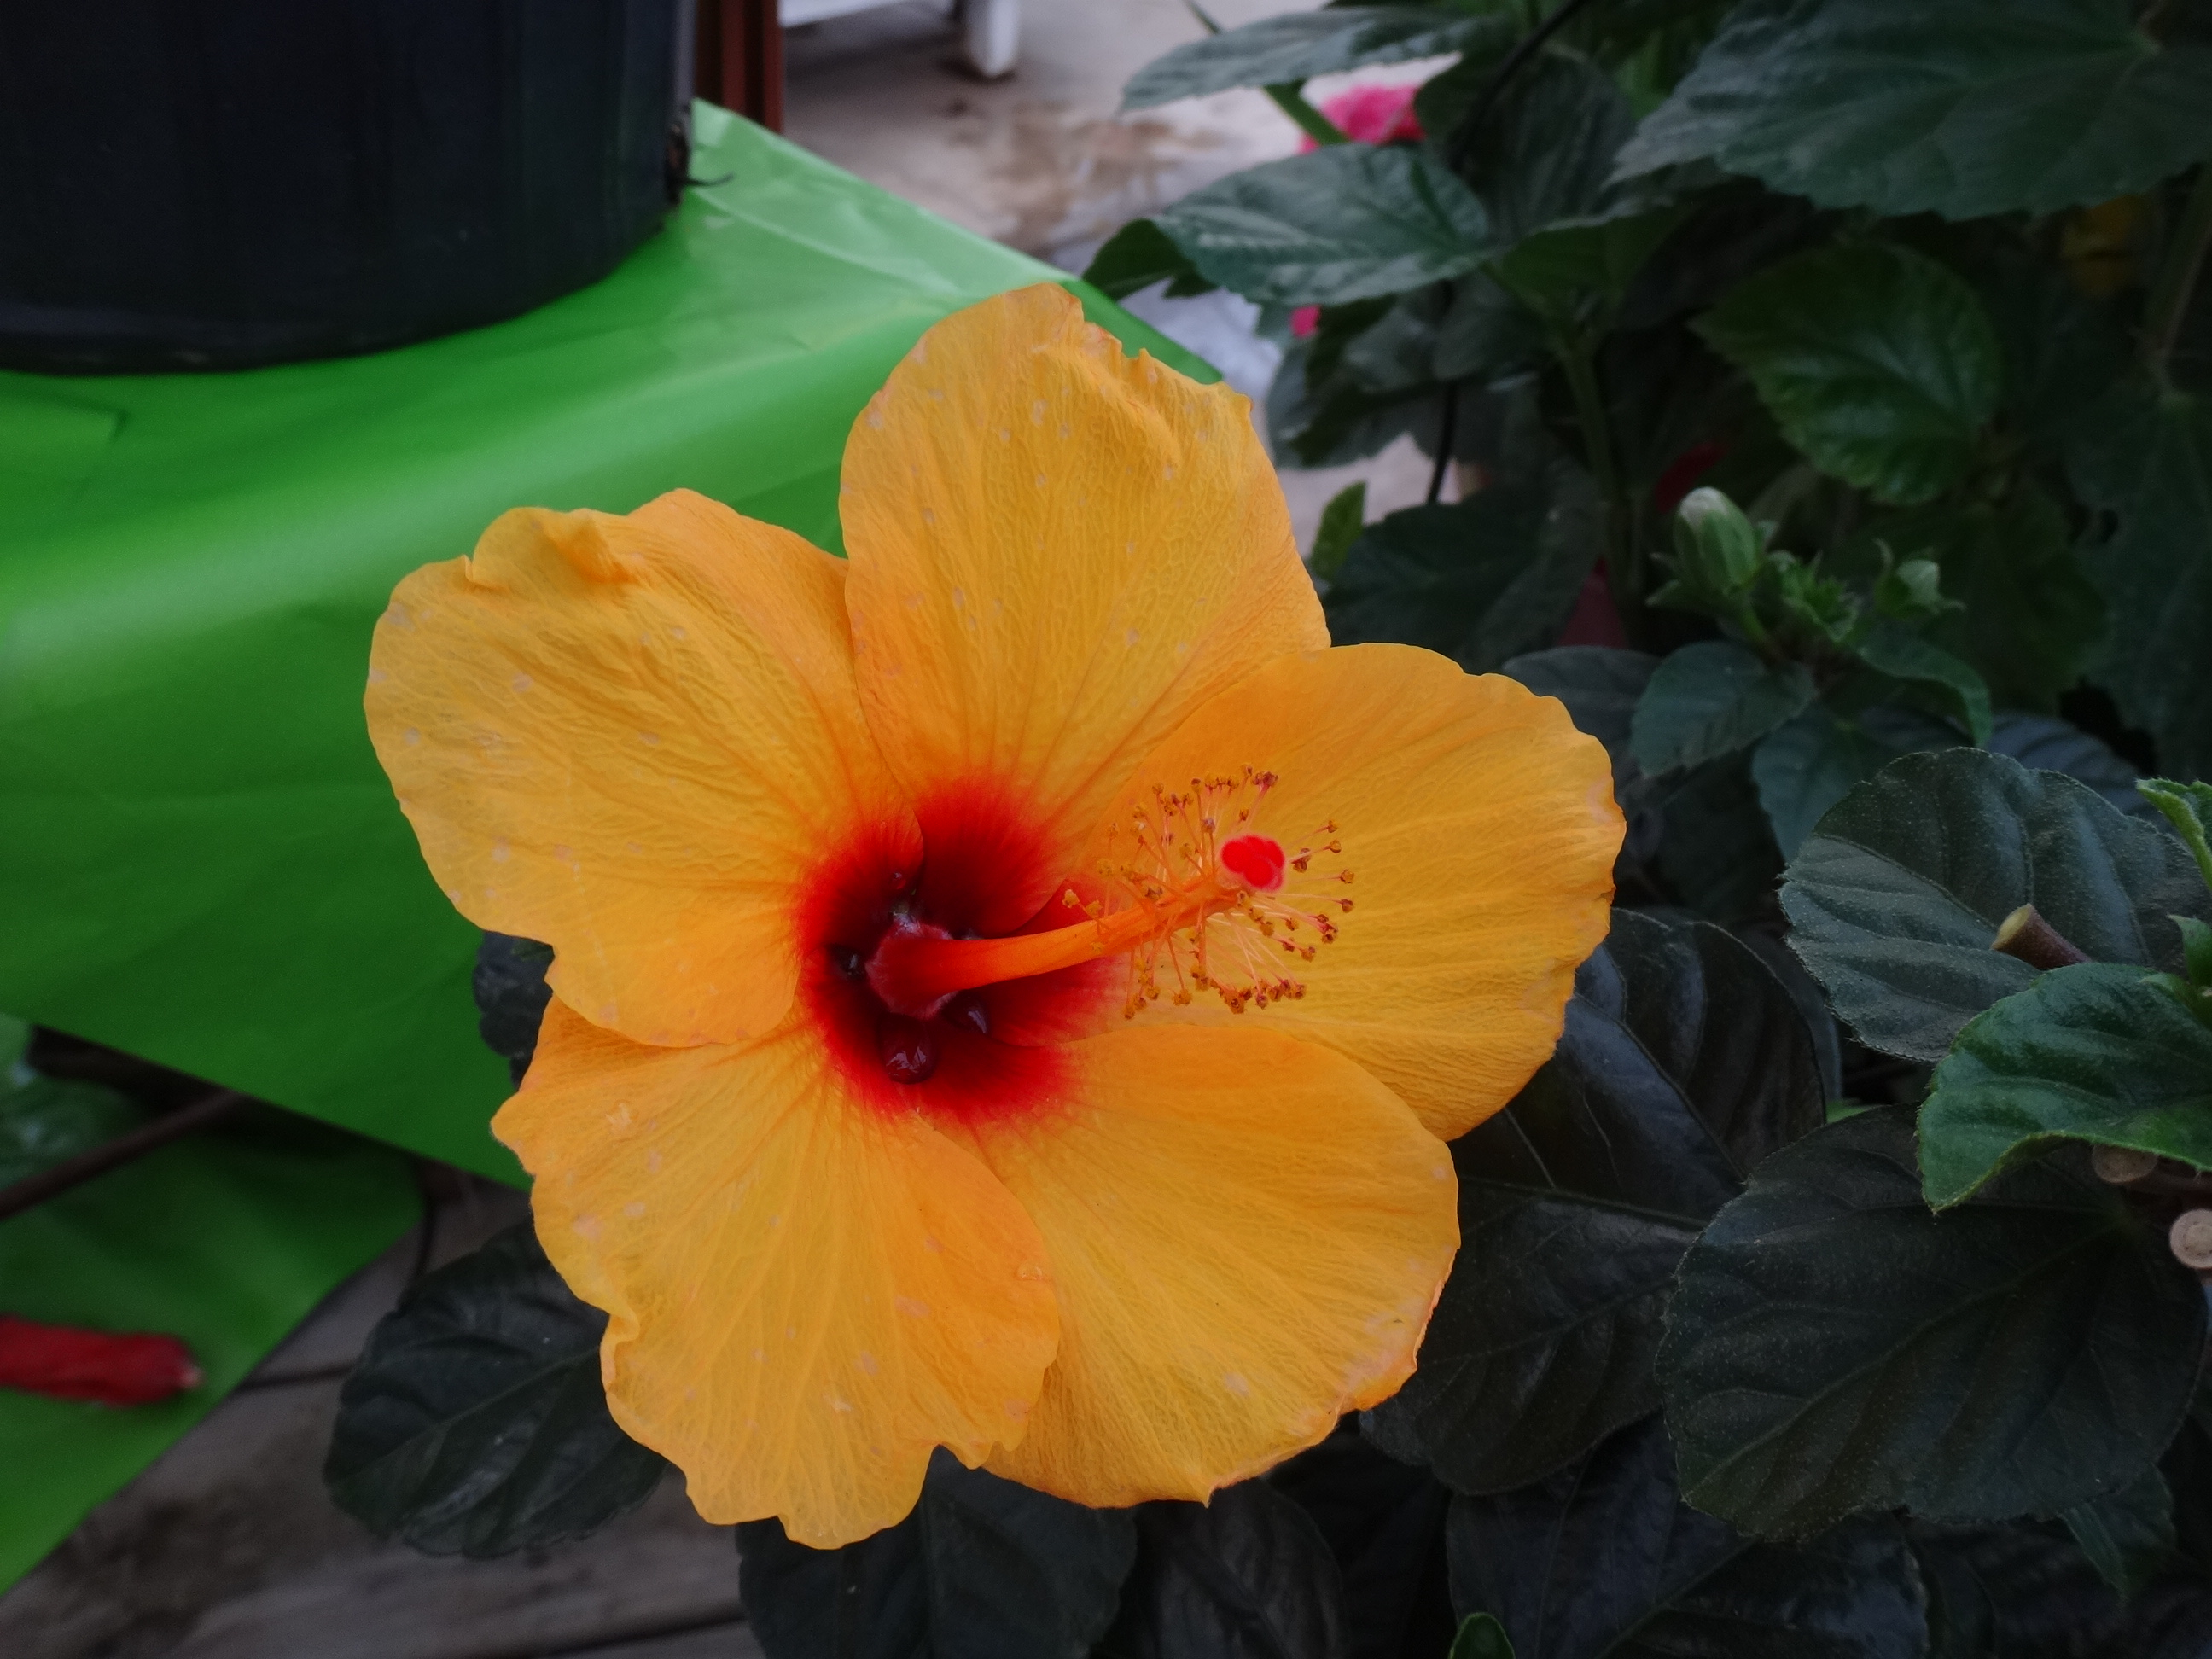 These pictures entailed a quick walk through of the local flower shop